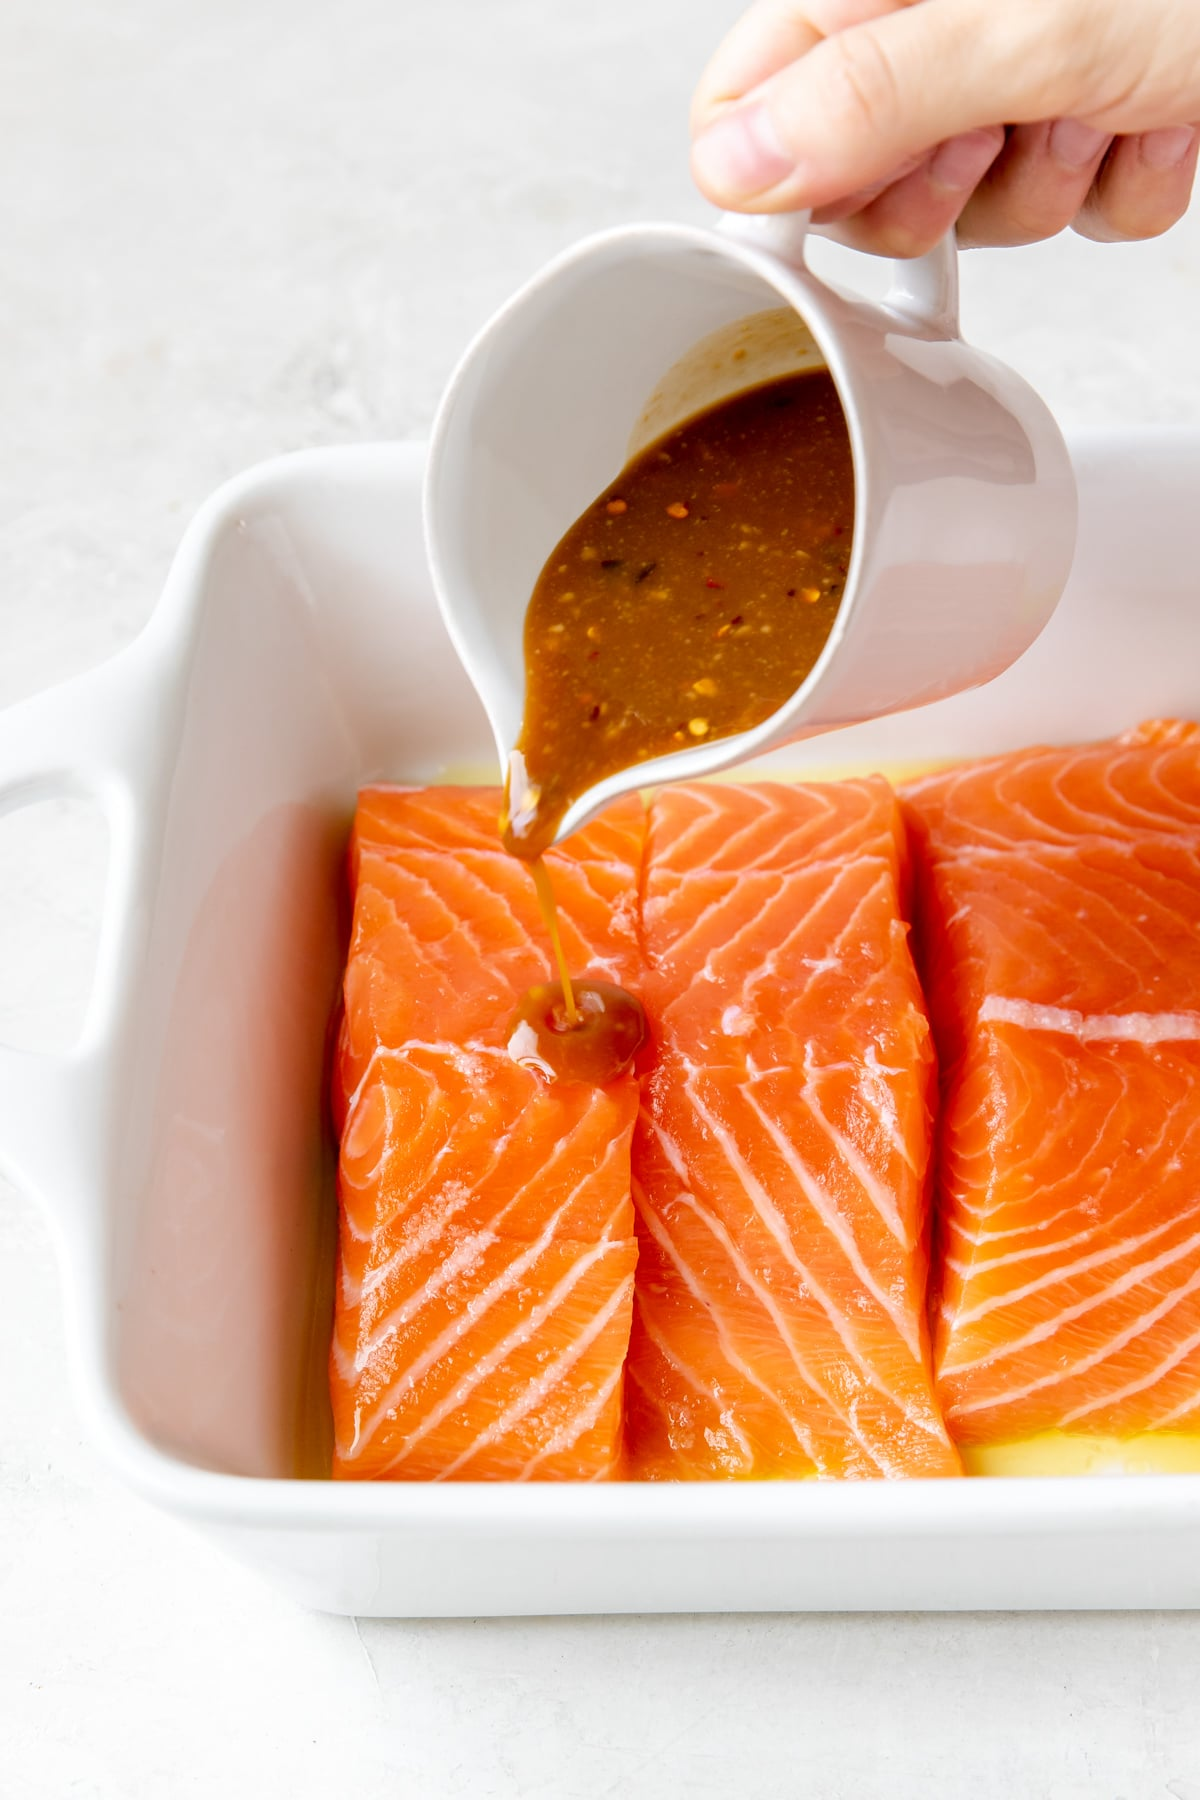 brown sugar miso sauce being poured onto fresh salmon fillets in a white baking dish